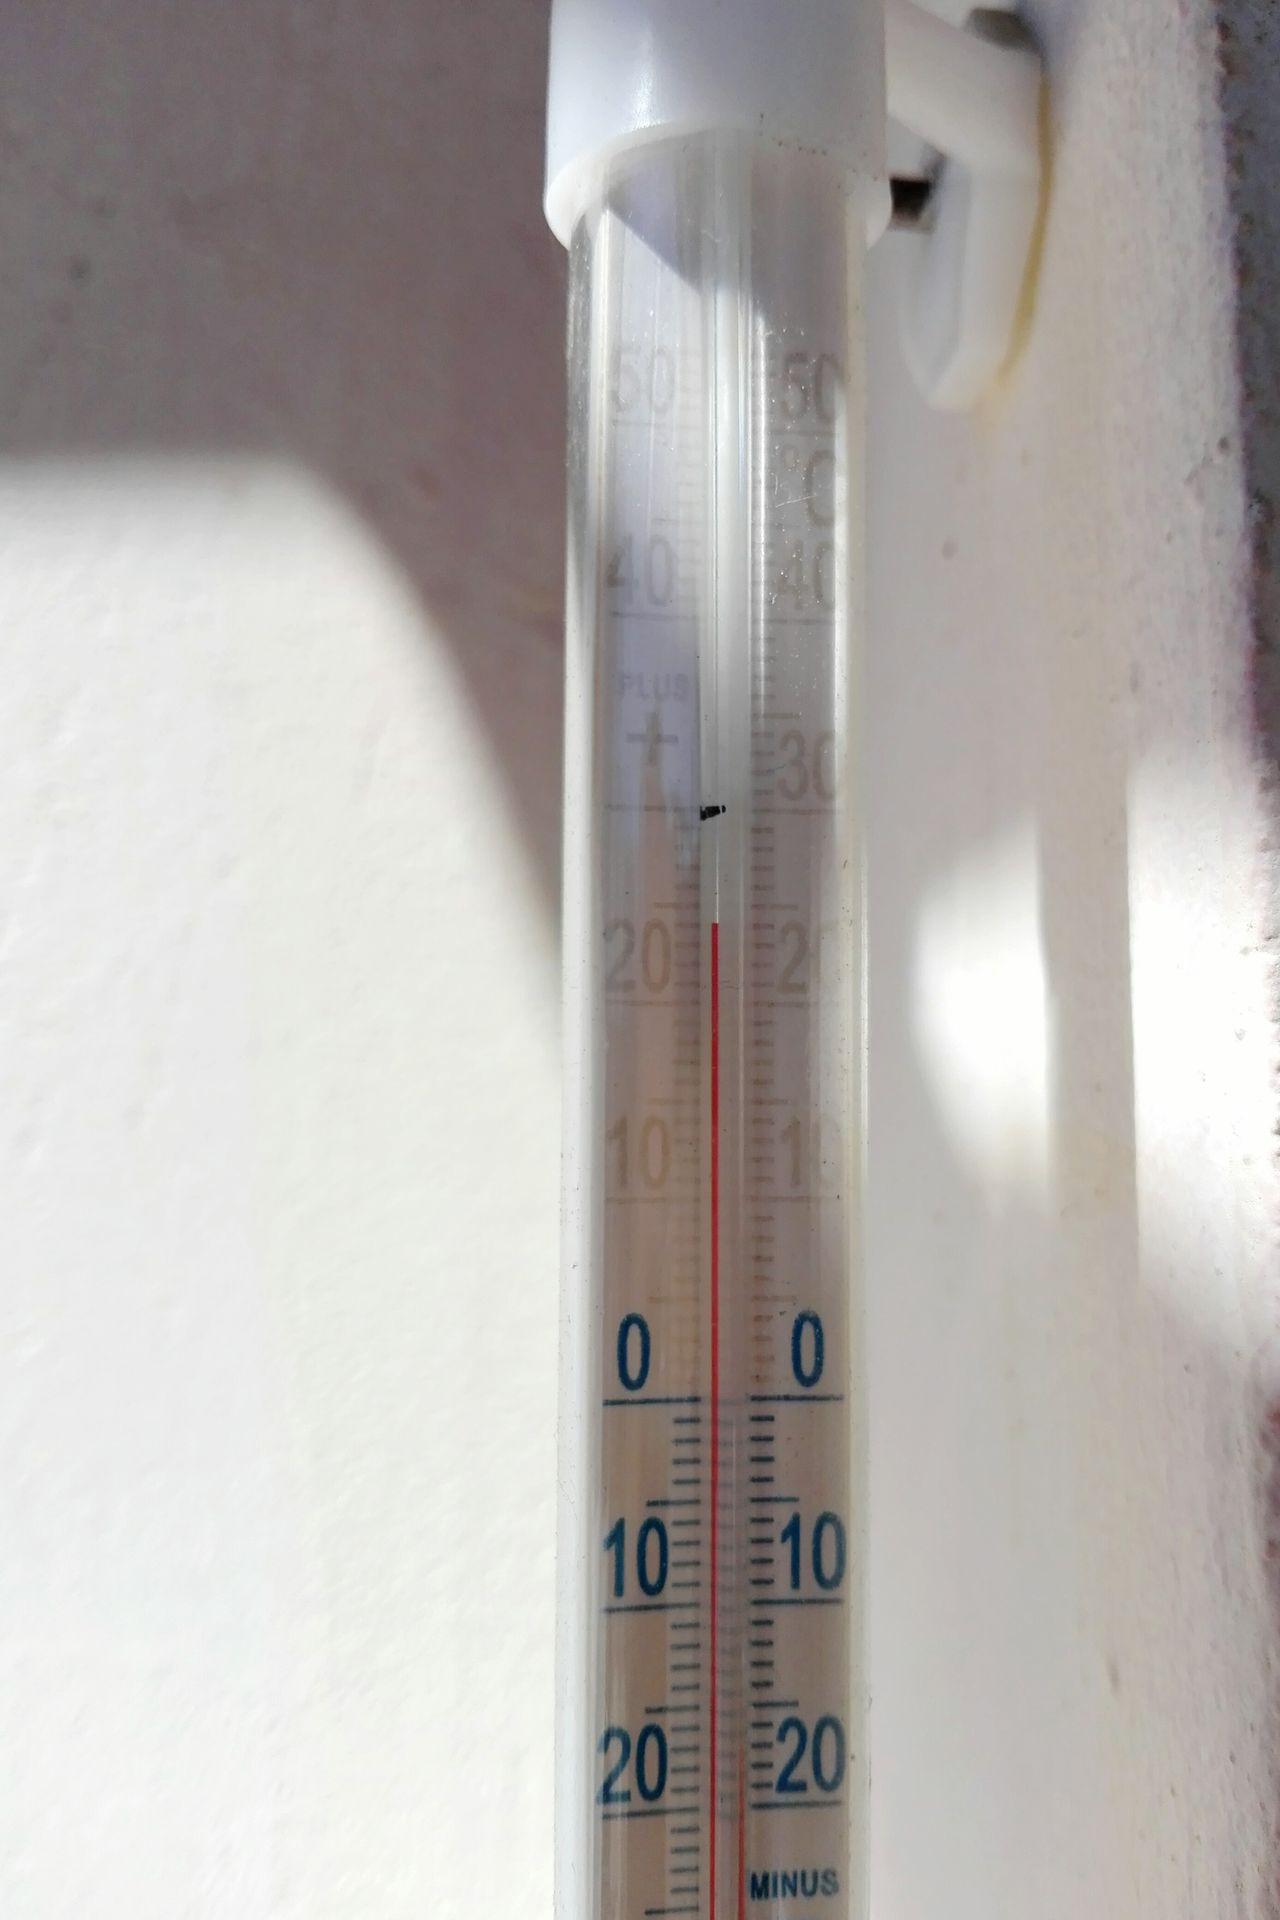 Close-up No People Healthcare And Medicine Thermometer Temperature Weather Warm Warm Weather Termometer Veronicaionita Edited By @wolfzuachis On Market Wolfzuachiv Huaweiphotography Showcase: 2017 @WOLFZUACHiV Eyeem Market Veronica Ionita Wolfzuachis Showcase: March Twentyfour Degree Celsius Ionitaveronica Celsius Degree Twentyfour 24 Degrees EyeEmNewHere